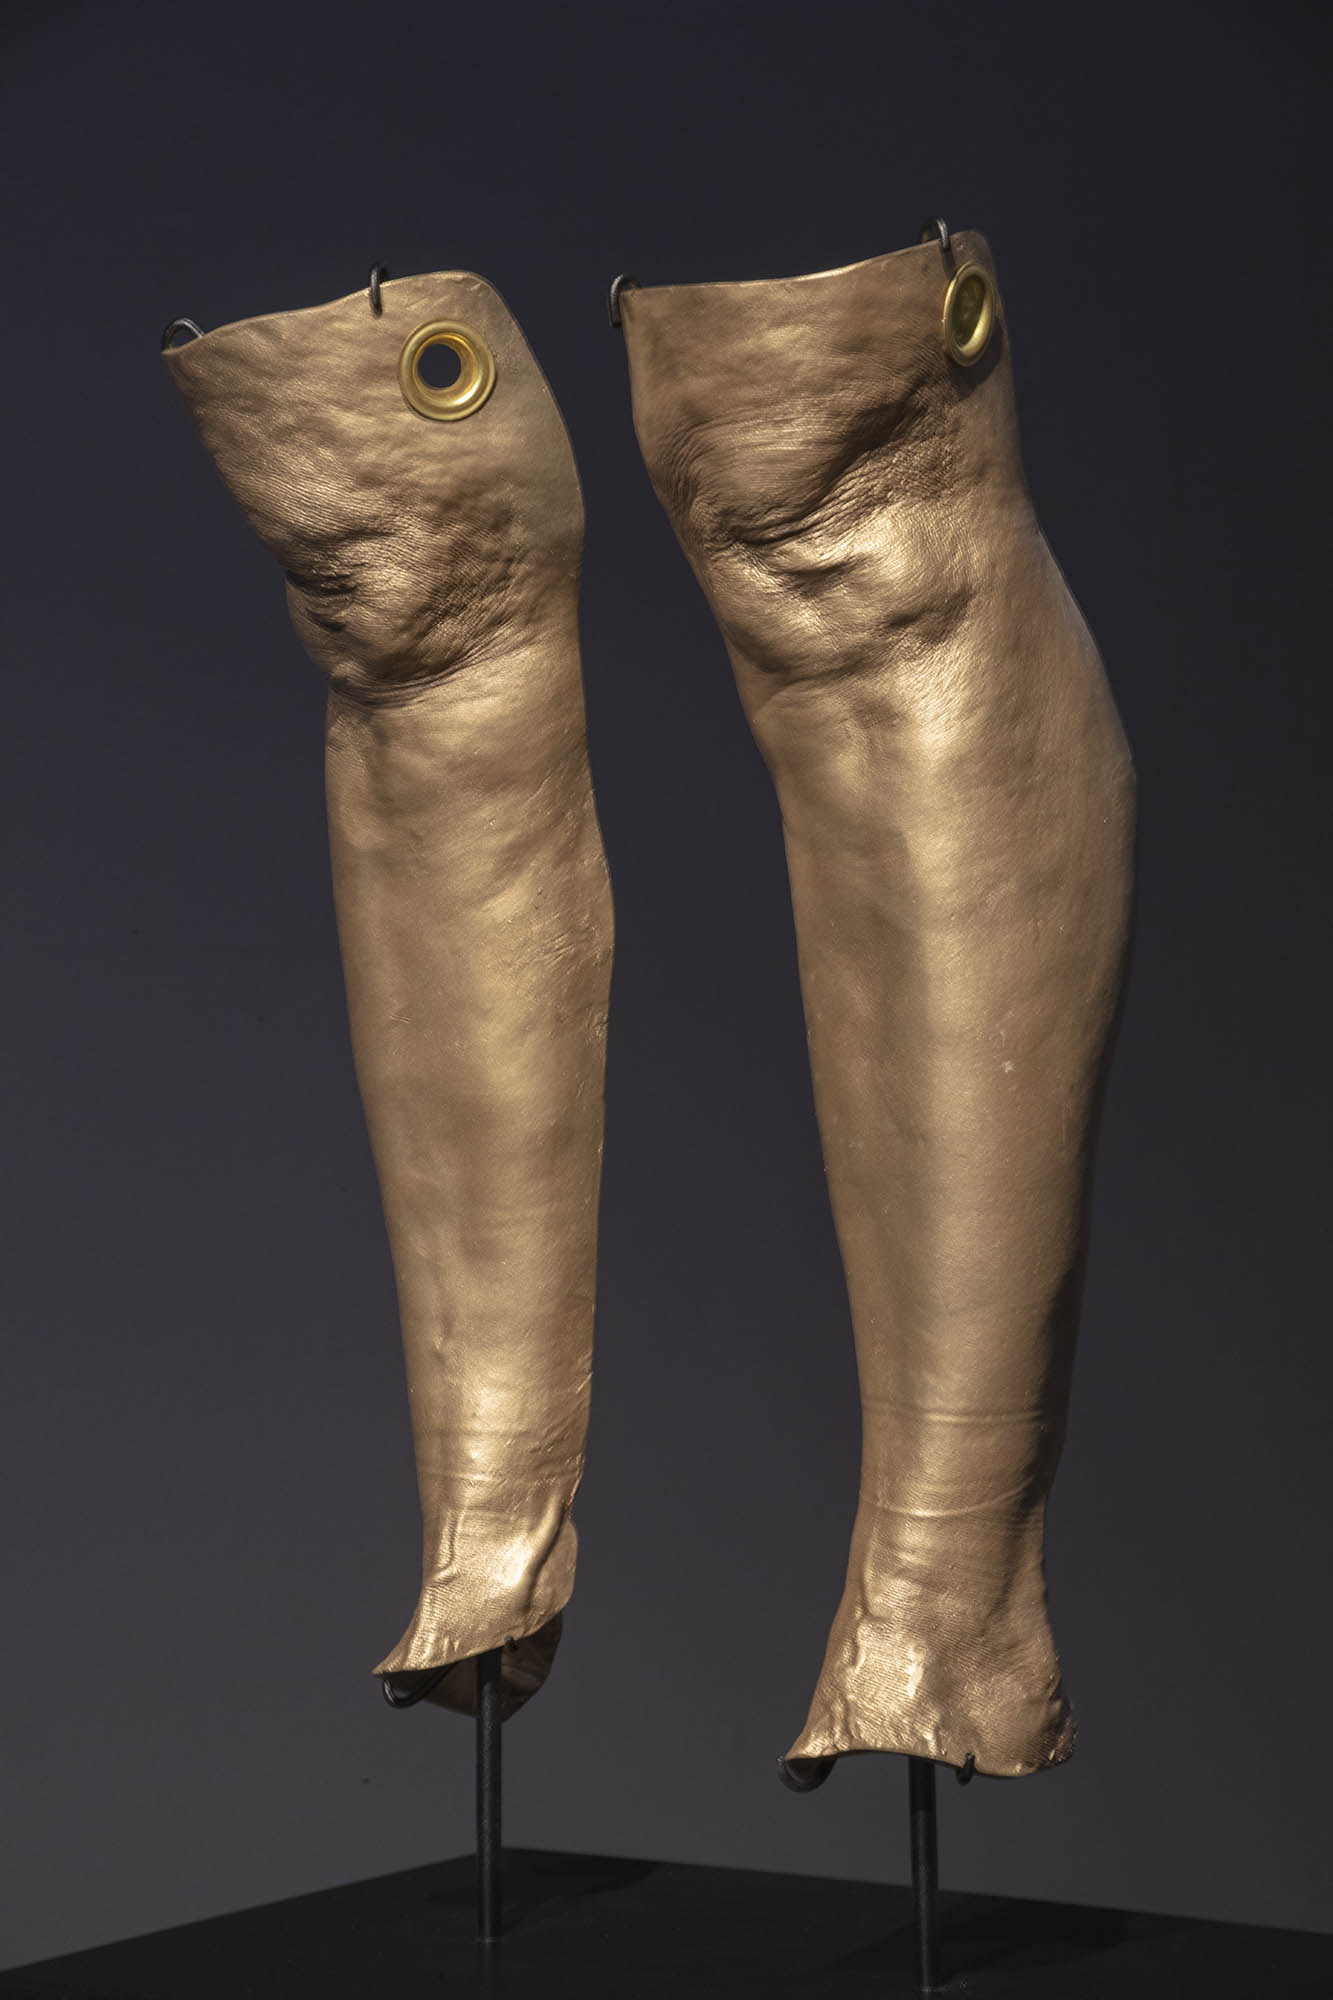 """JULIE RRAP  """"Knee Capped"""" Cleaves  [detail], 2019 Bronze and steel, edition of 3  98 x 40 x 28.5 cm Photograph by John Gollings"""